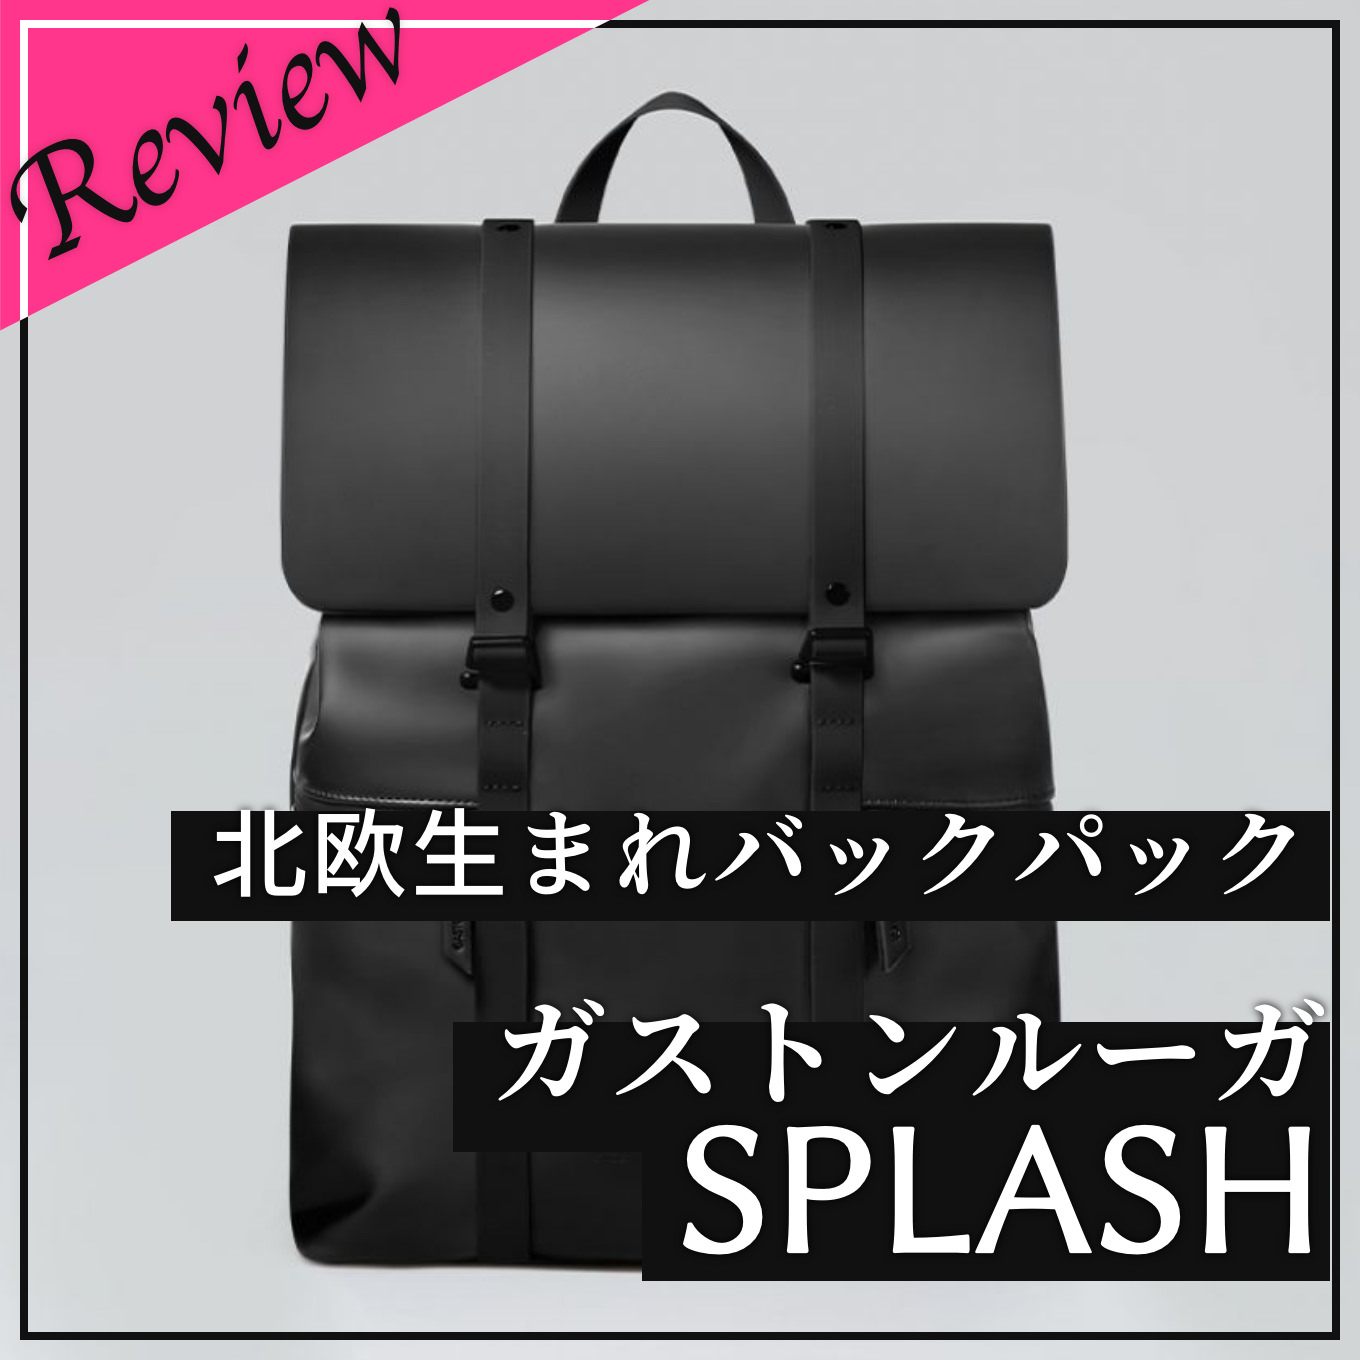 review-gastonluga-splash